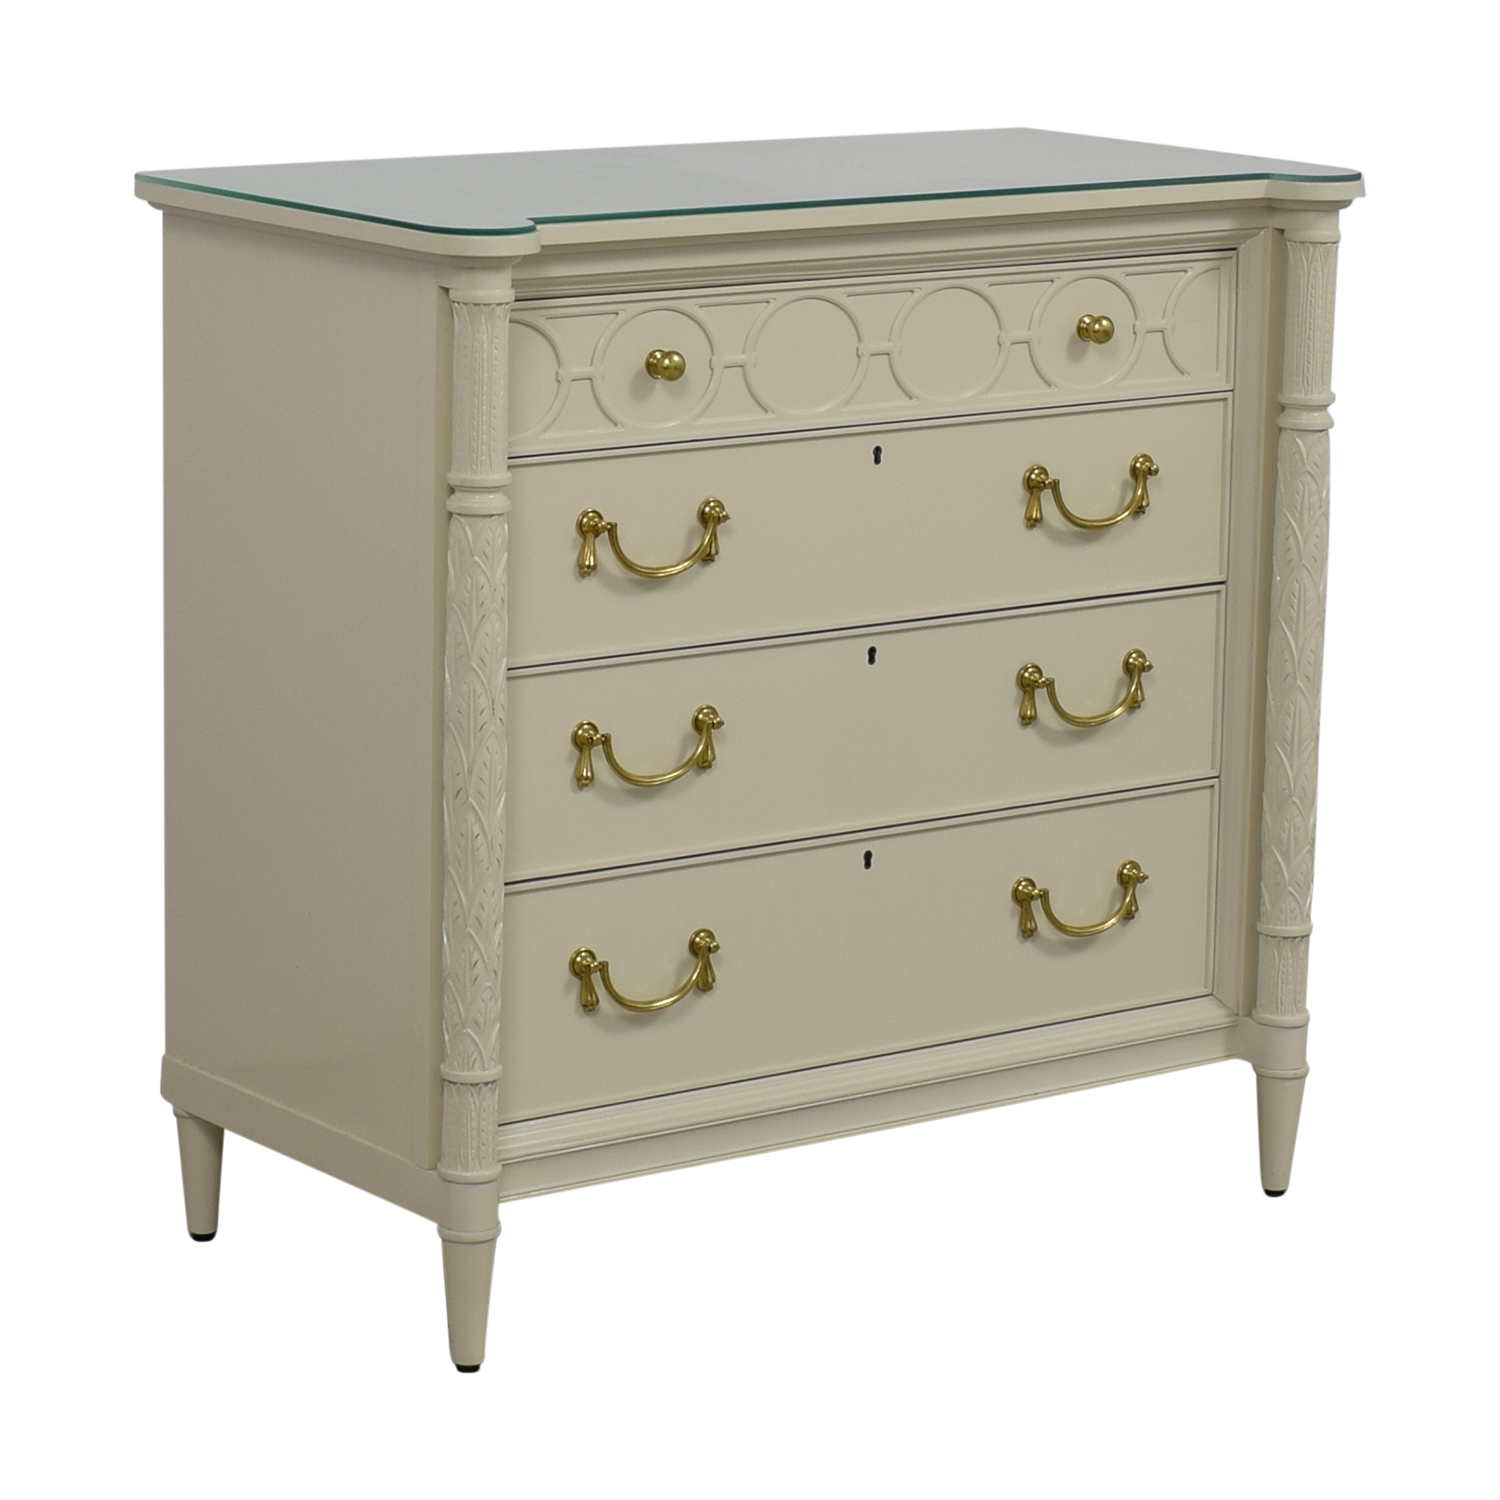 Stanley Furniture Charleston Regency King Charles Bachelor Chest / Dressers